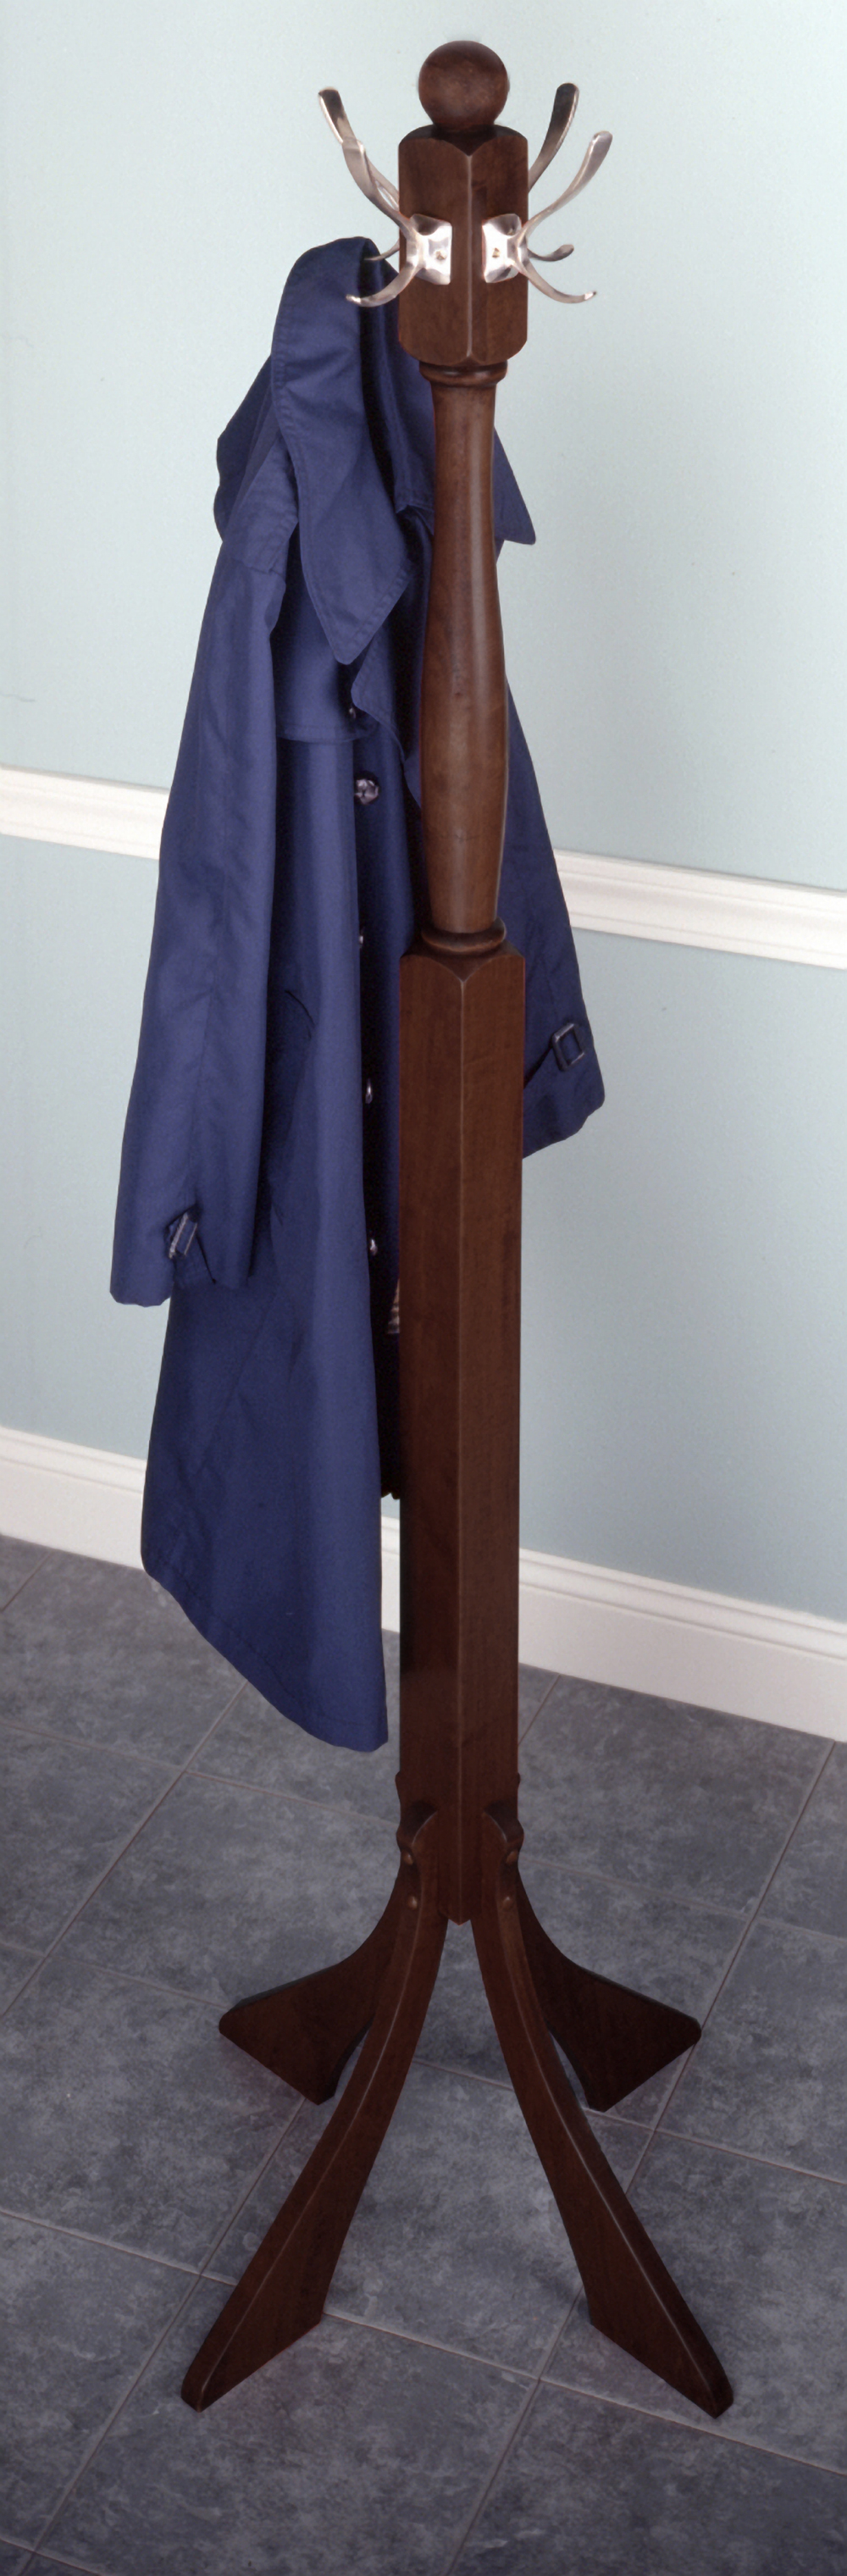 Winsome 94474 Walnut Beechwood COAT HANGER 74 Inch 4 DOUBLE-HOOK